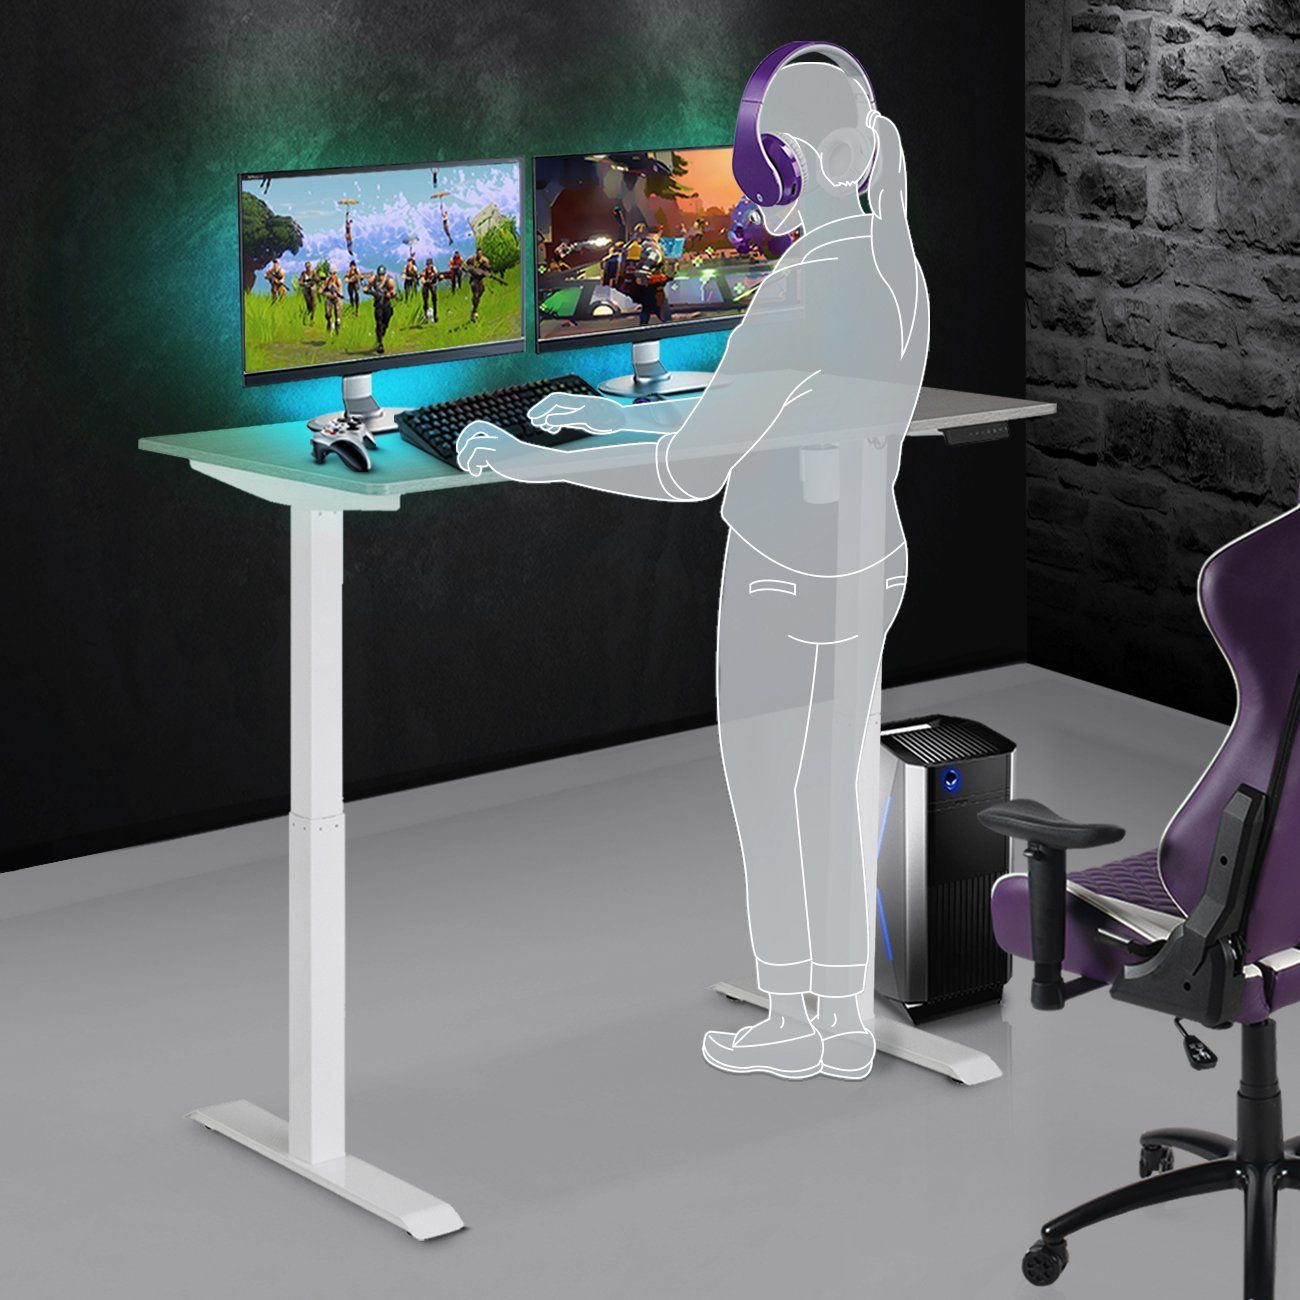 Gaming Desk Aria in 2020 Sit to stand, Desk, Gaming desk